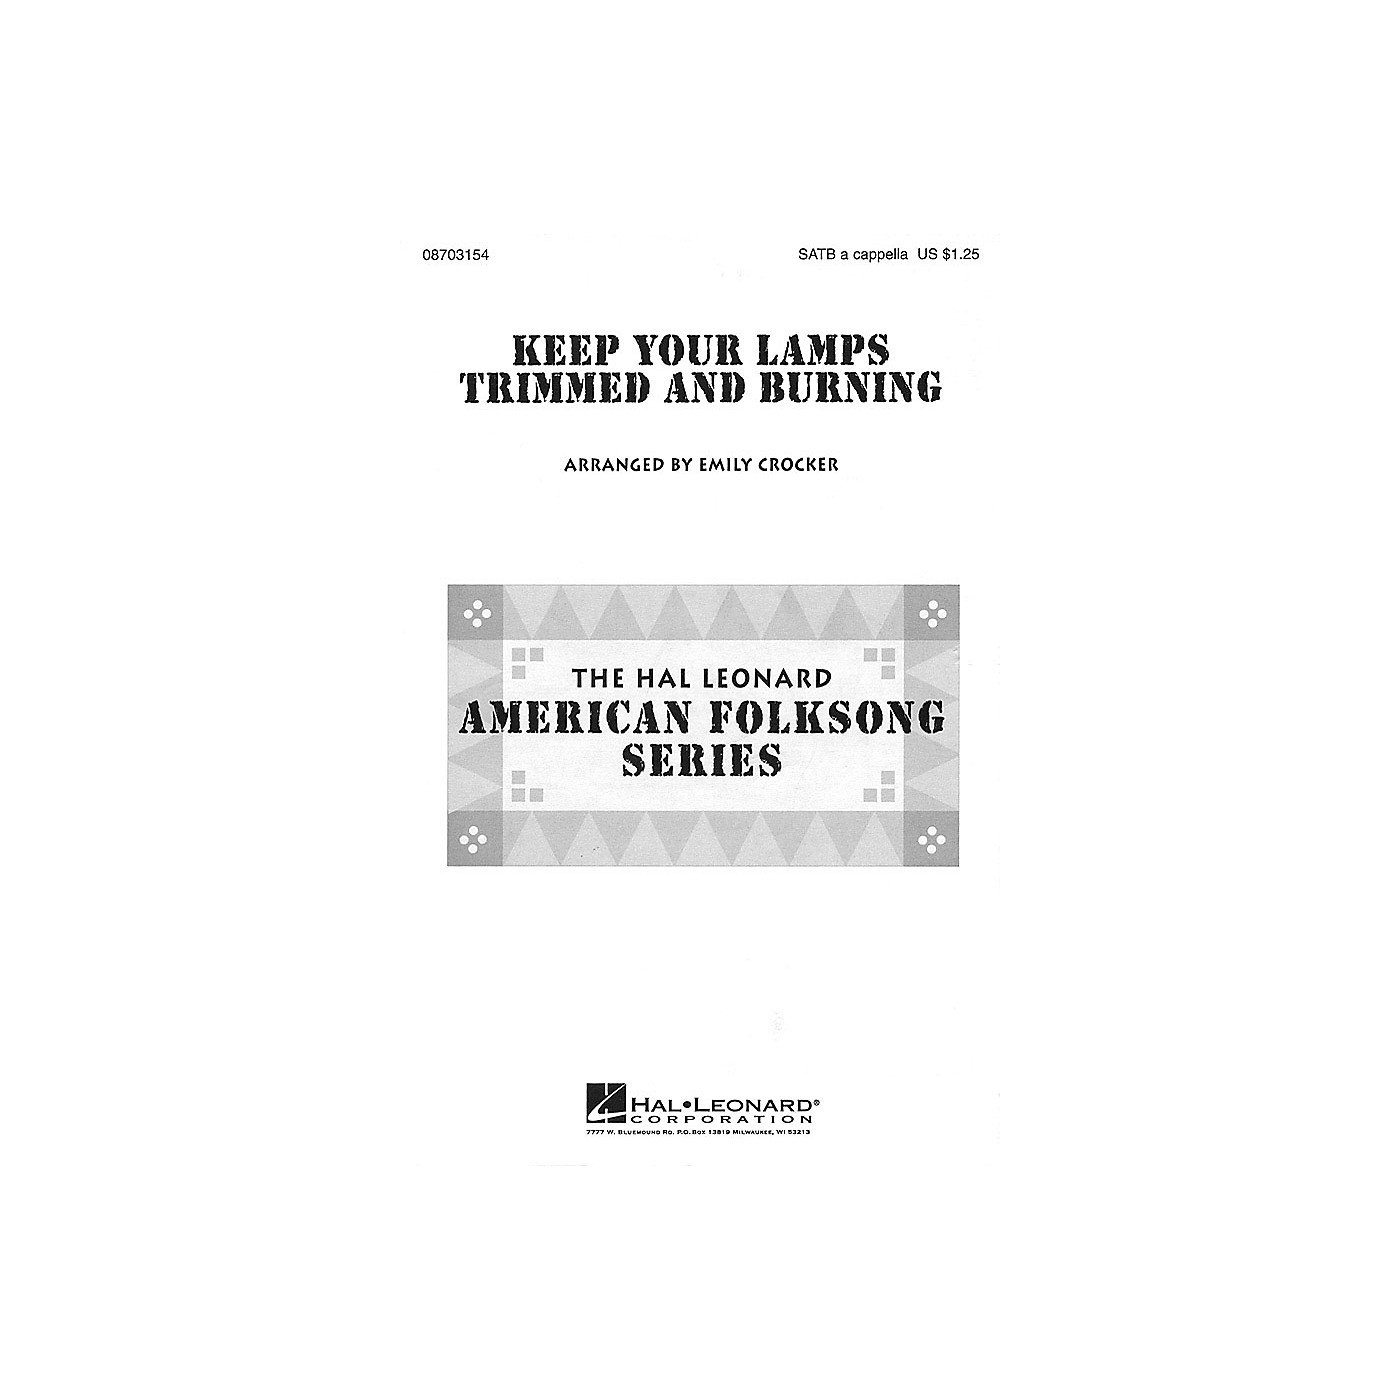 Hal Leonard Keep Your Lamps Trimmed and Burnin' SATB a cappella arranged by Emily Crocker thumbnail